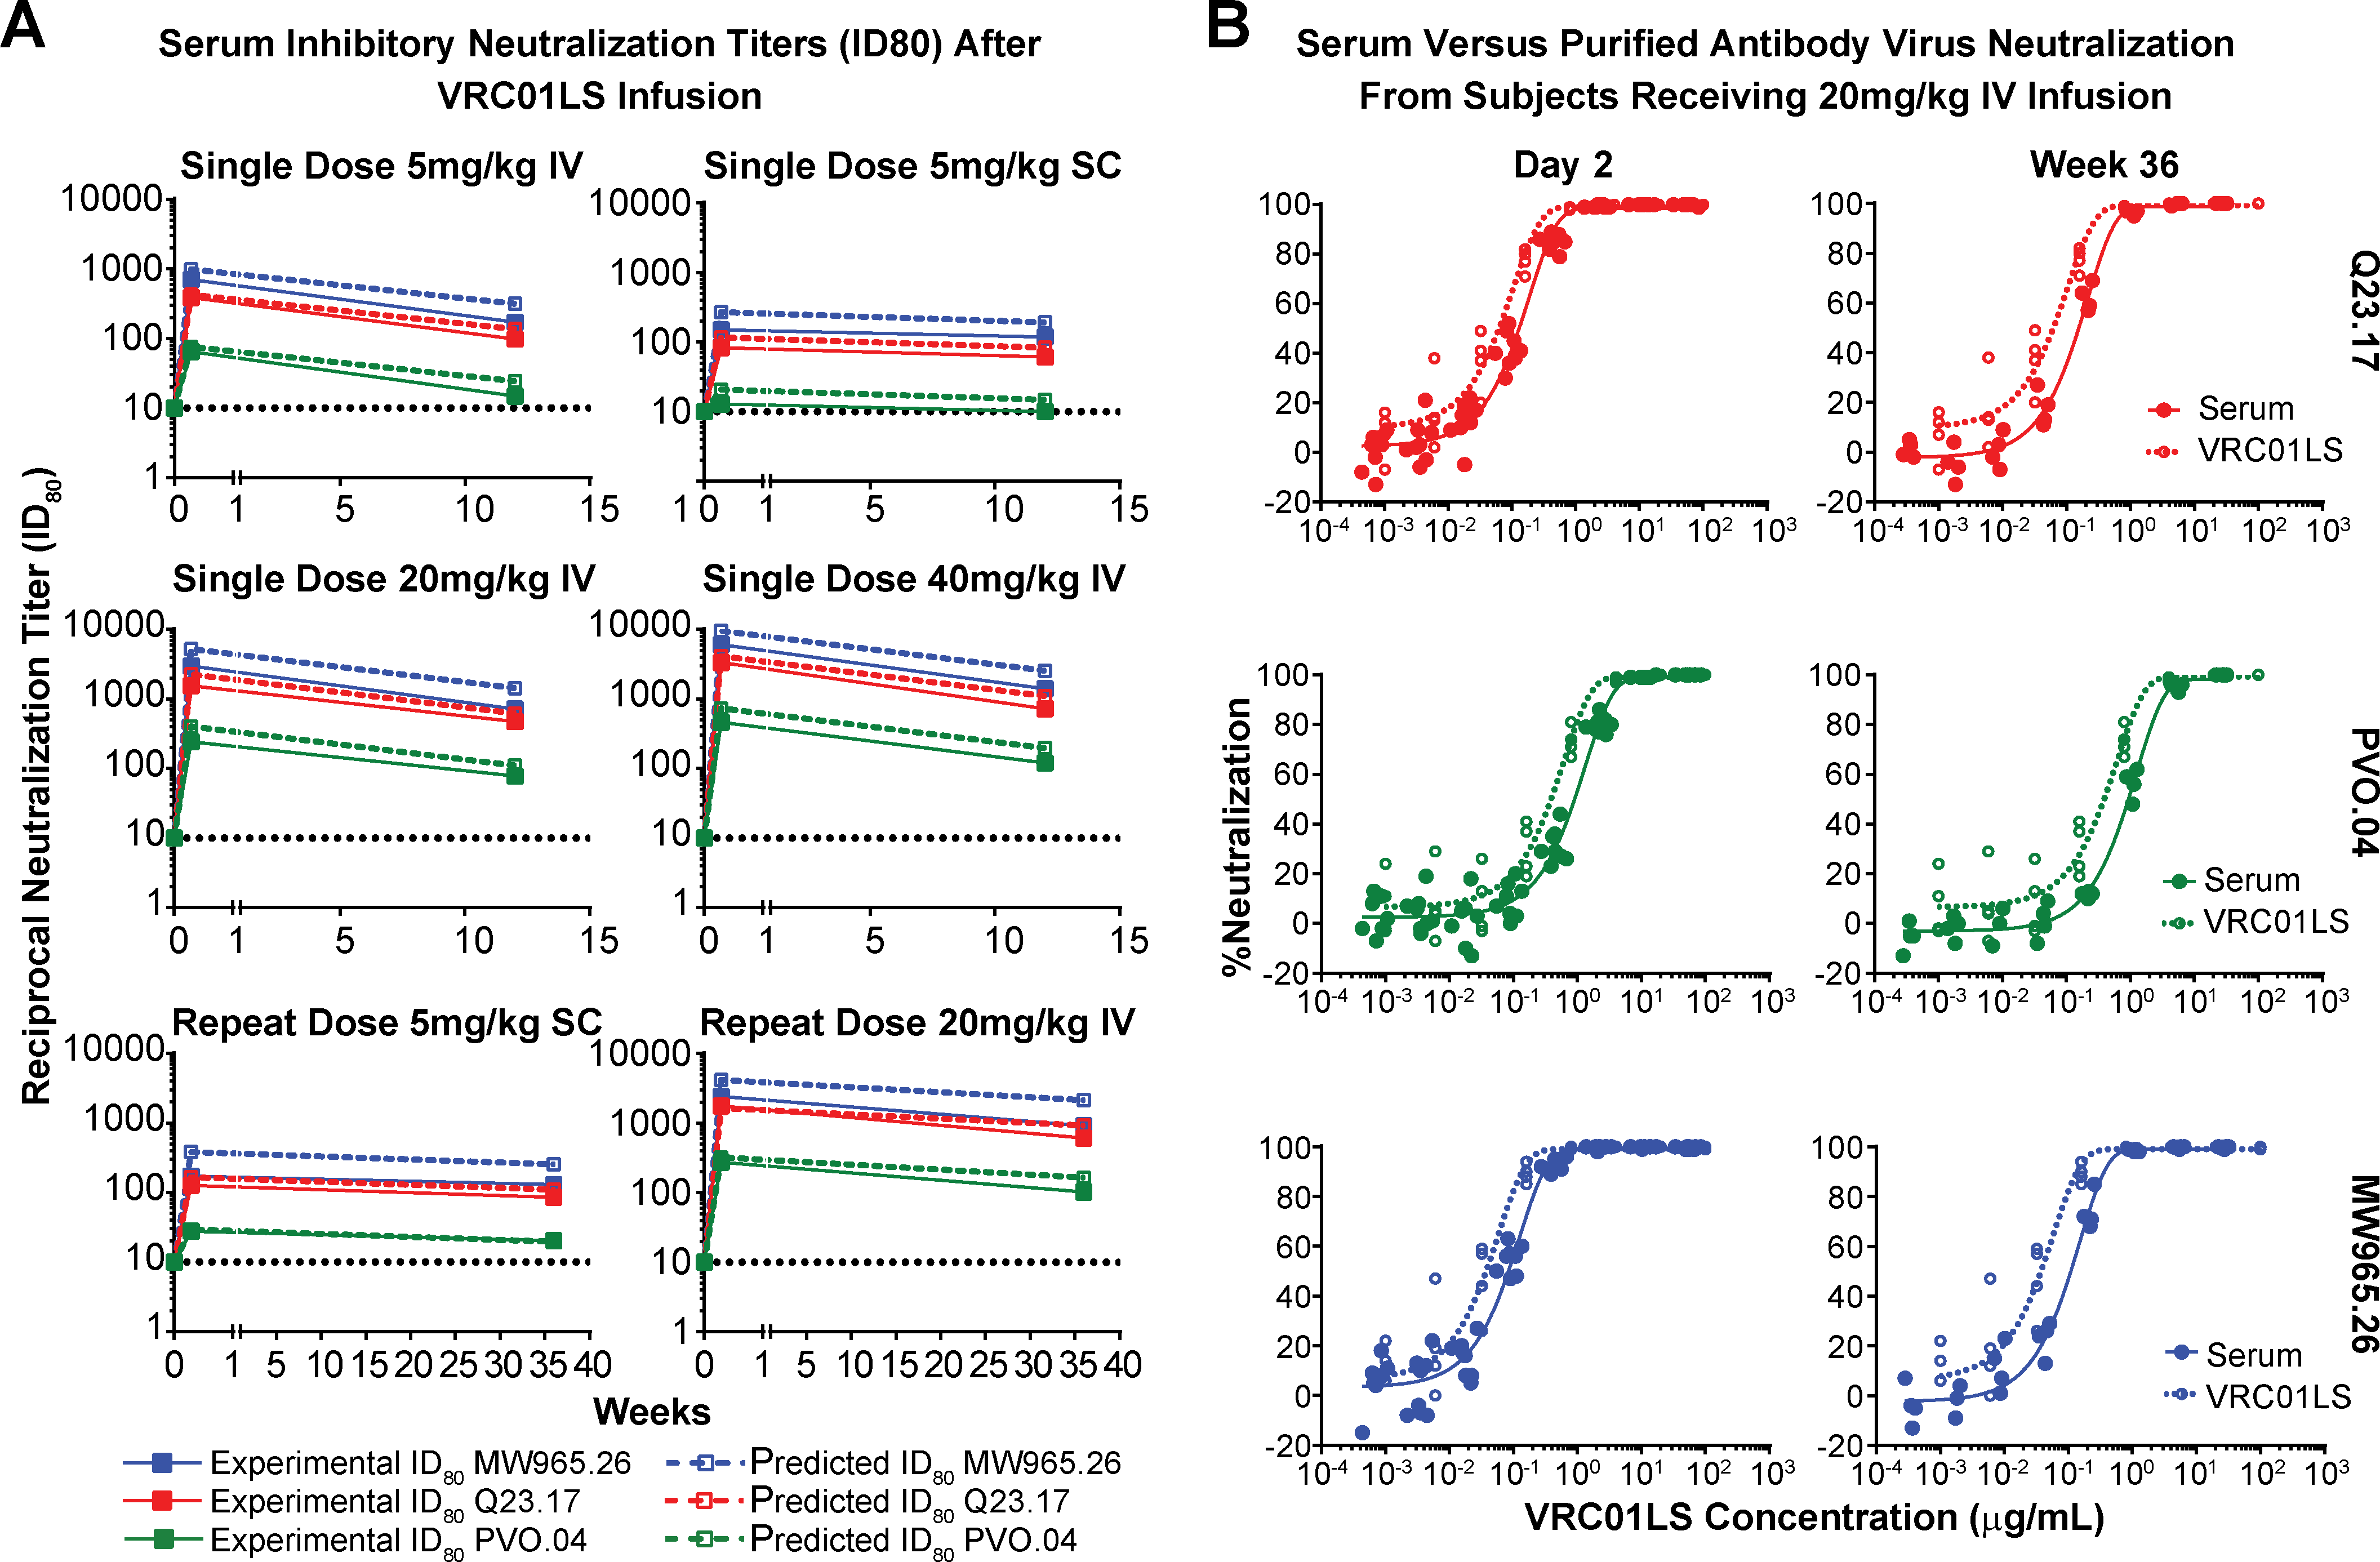 Neutralizing ability of VRC01LS is maintained in serum after infusion.